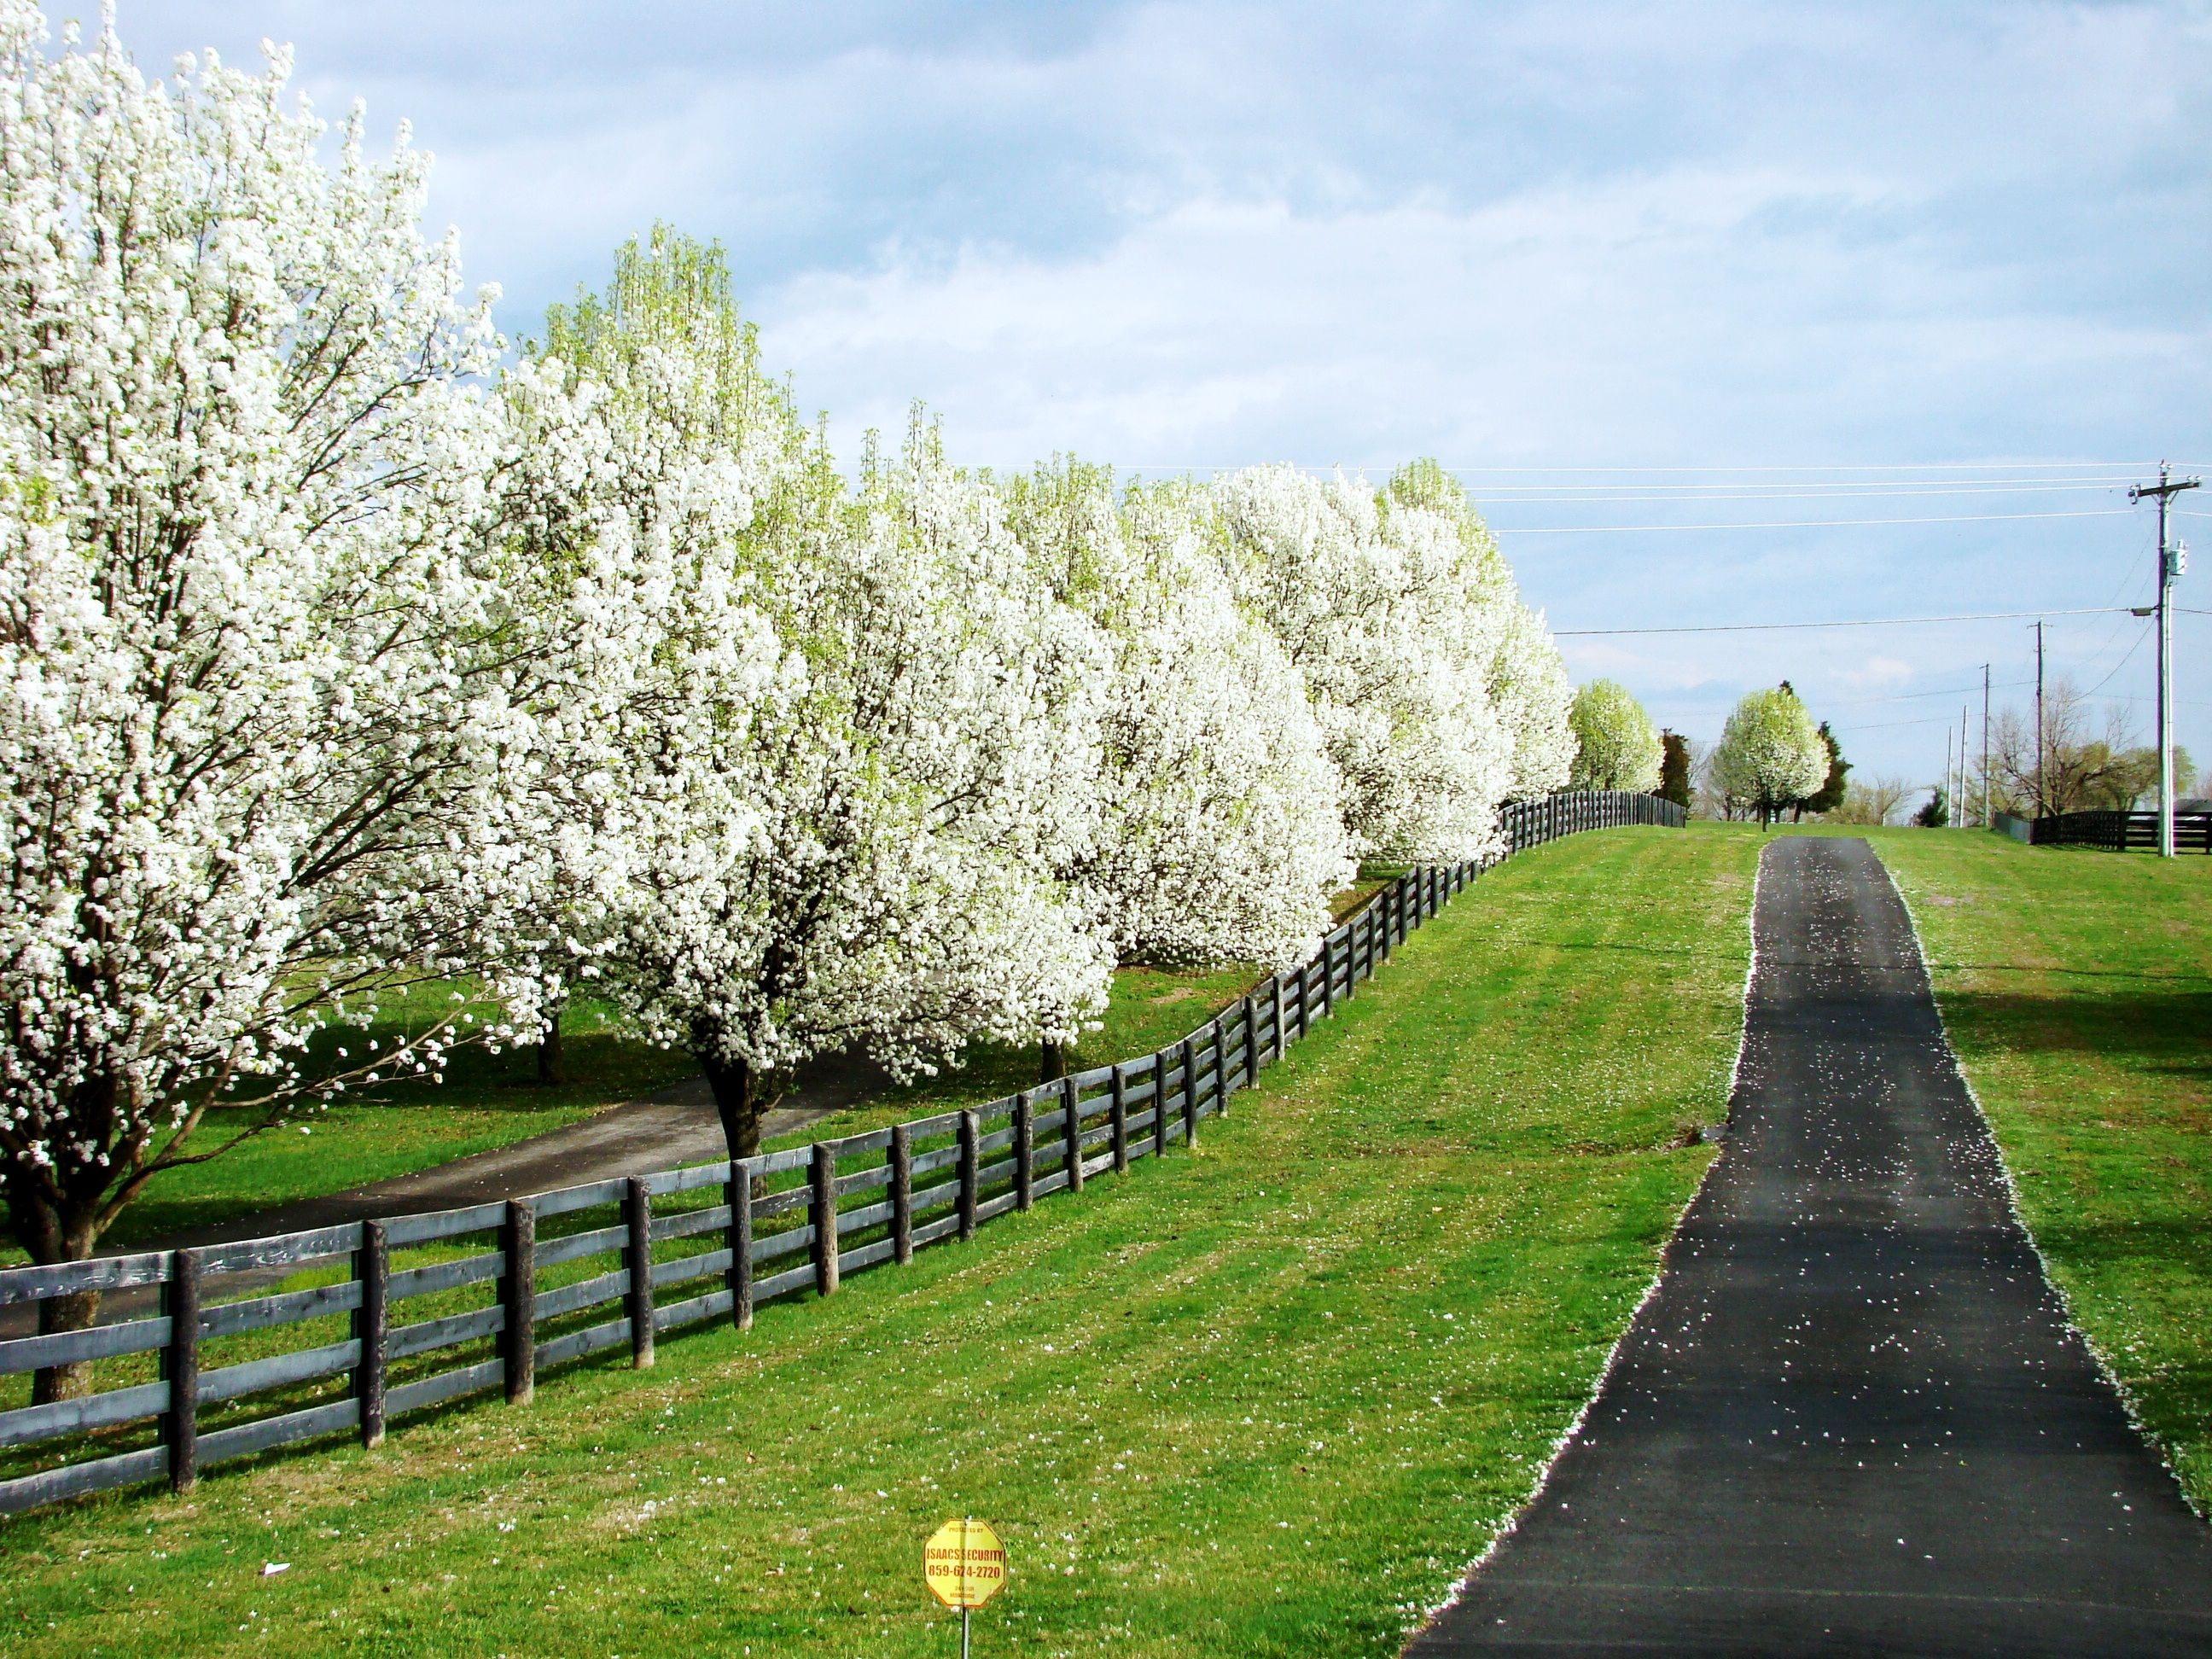 Landscaping With Pear Trees : A row of bradford pear trees along the driveway